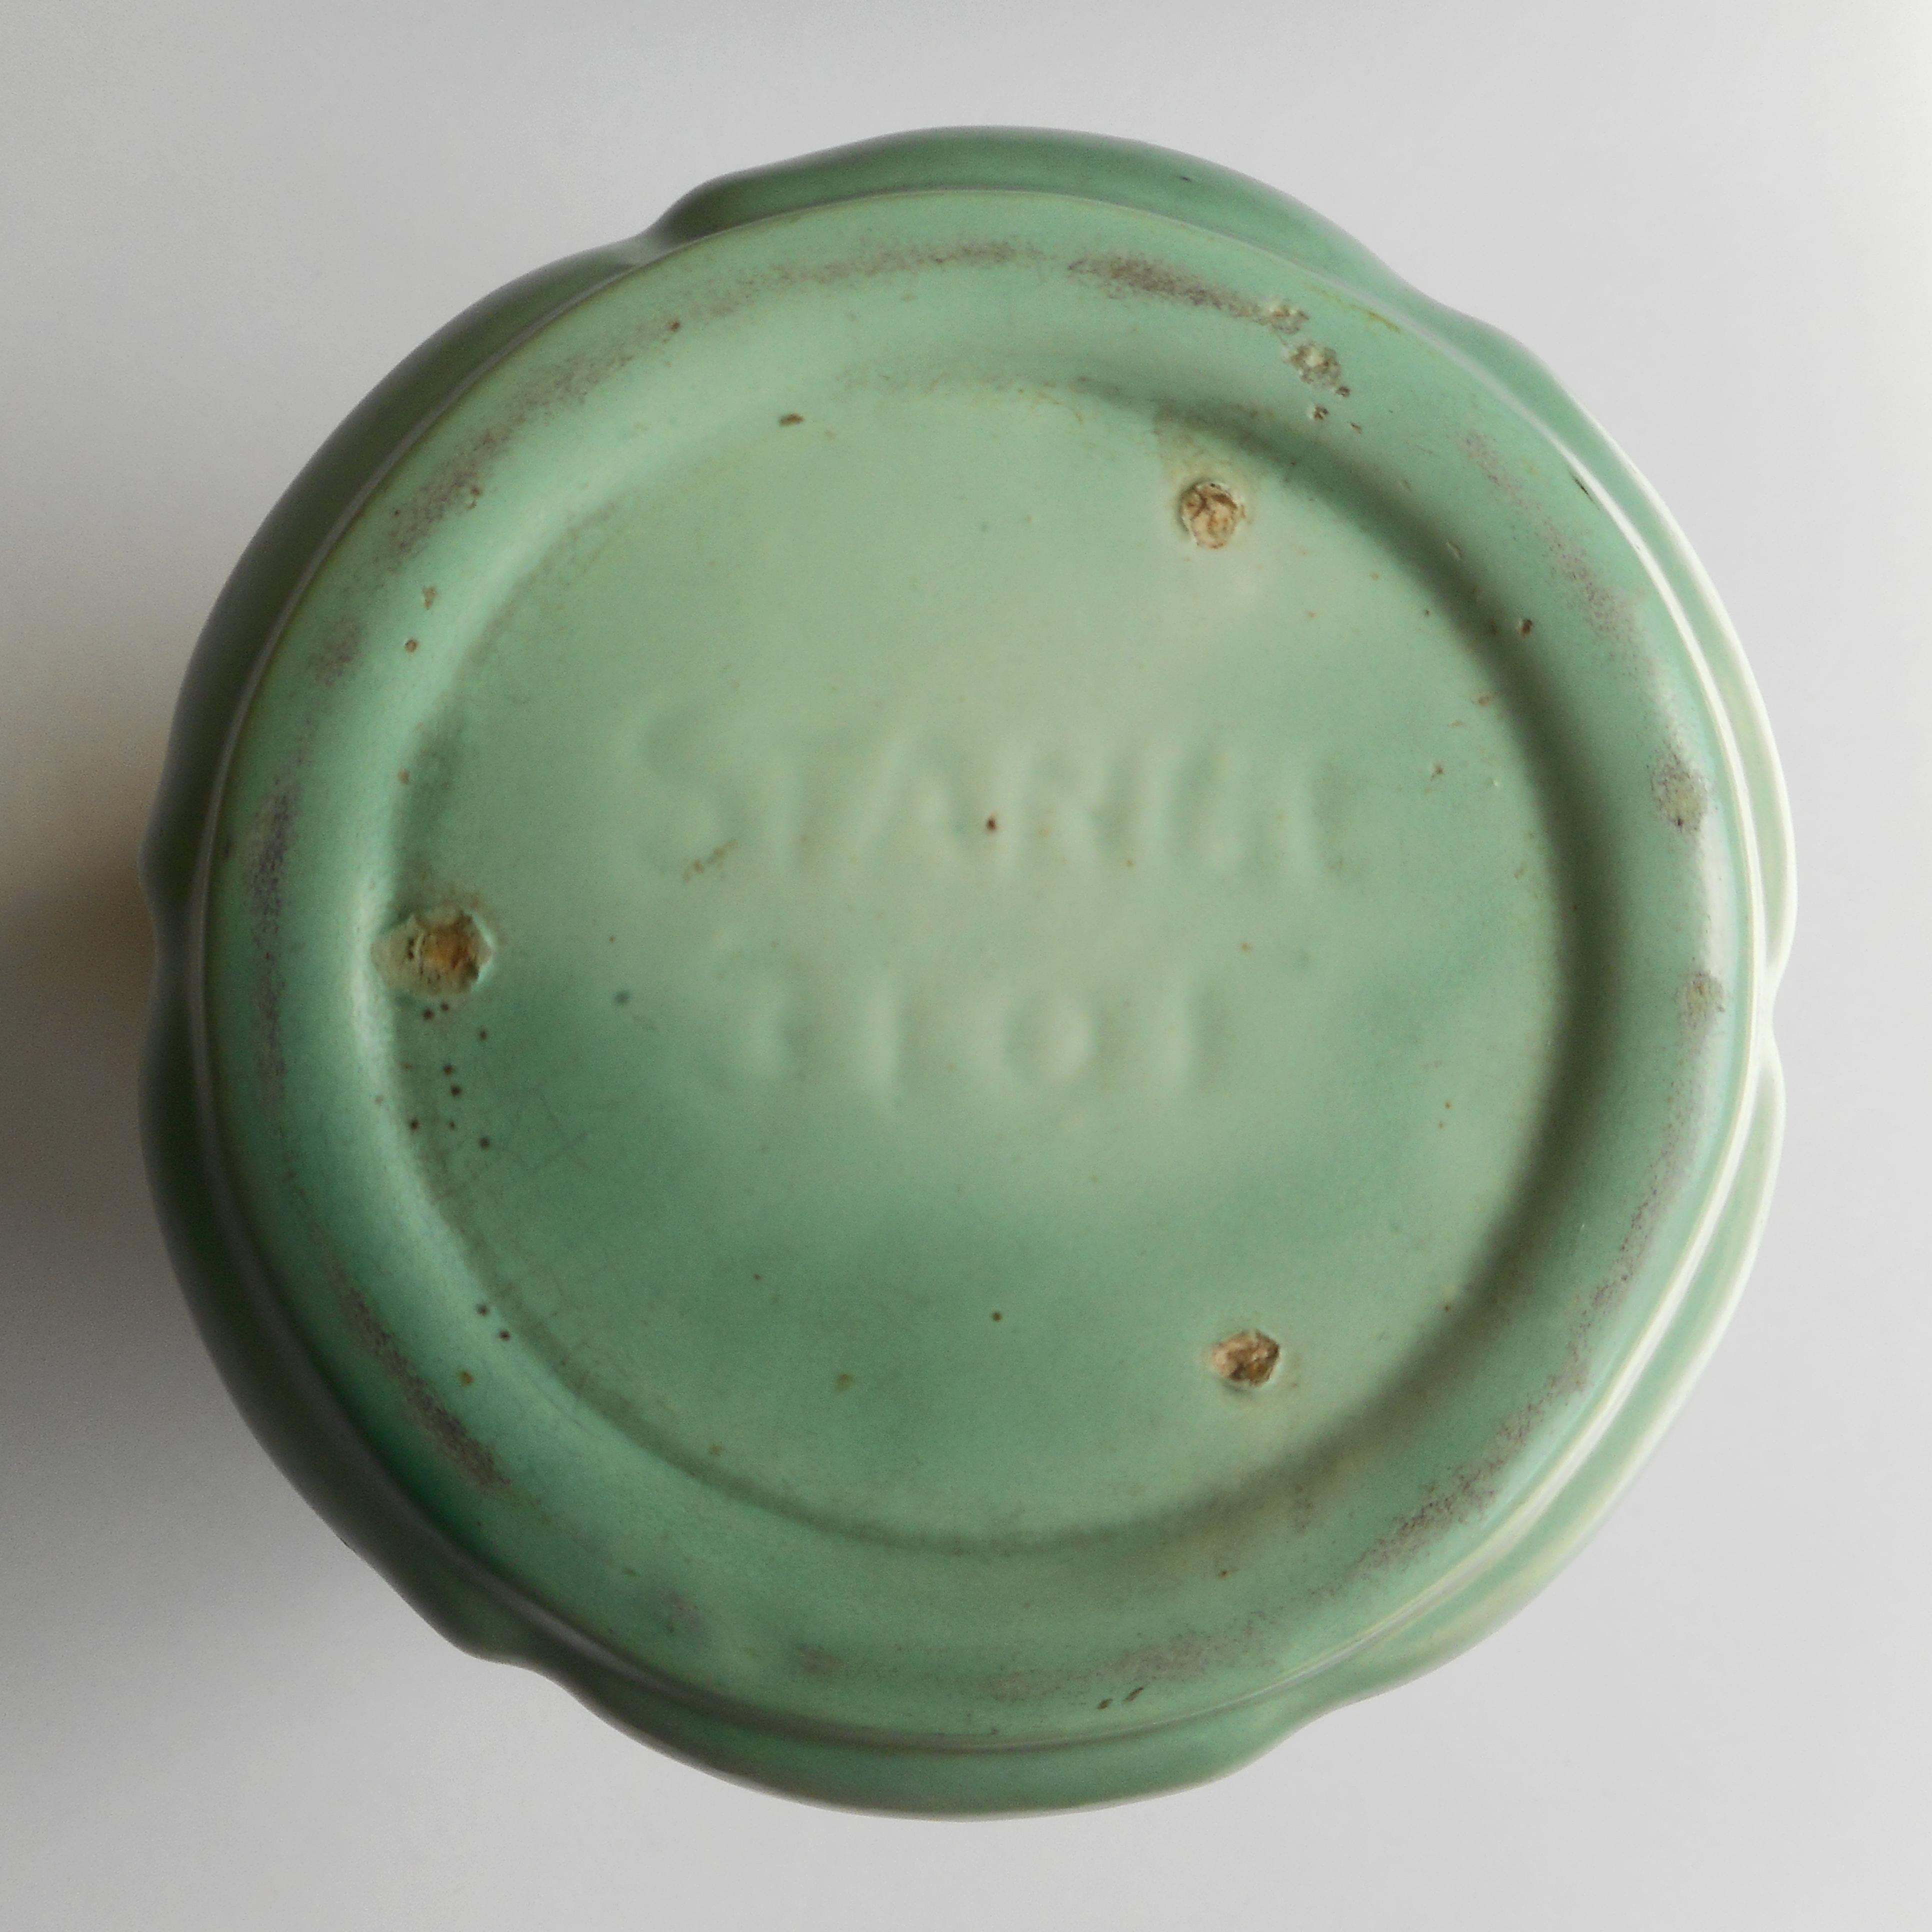 1930s Art Deco Stangl Green Signed Stangl Pottery Vase - Image 6 of 8 & 1930s Art Deco Stangl Green Signed Stangl Pottery Vase | Chairish